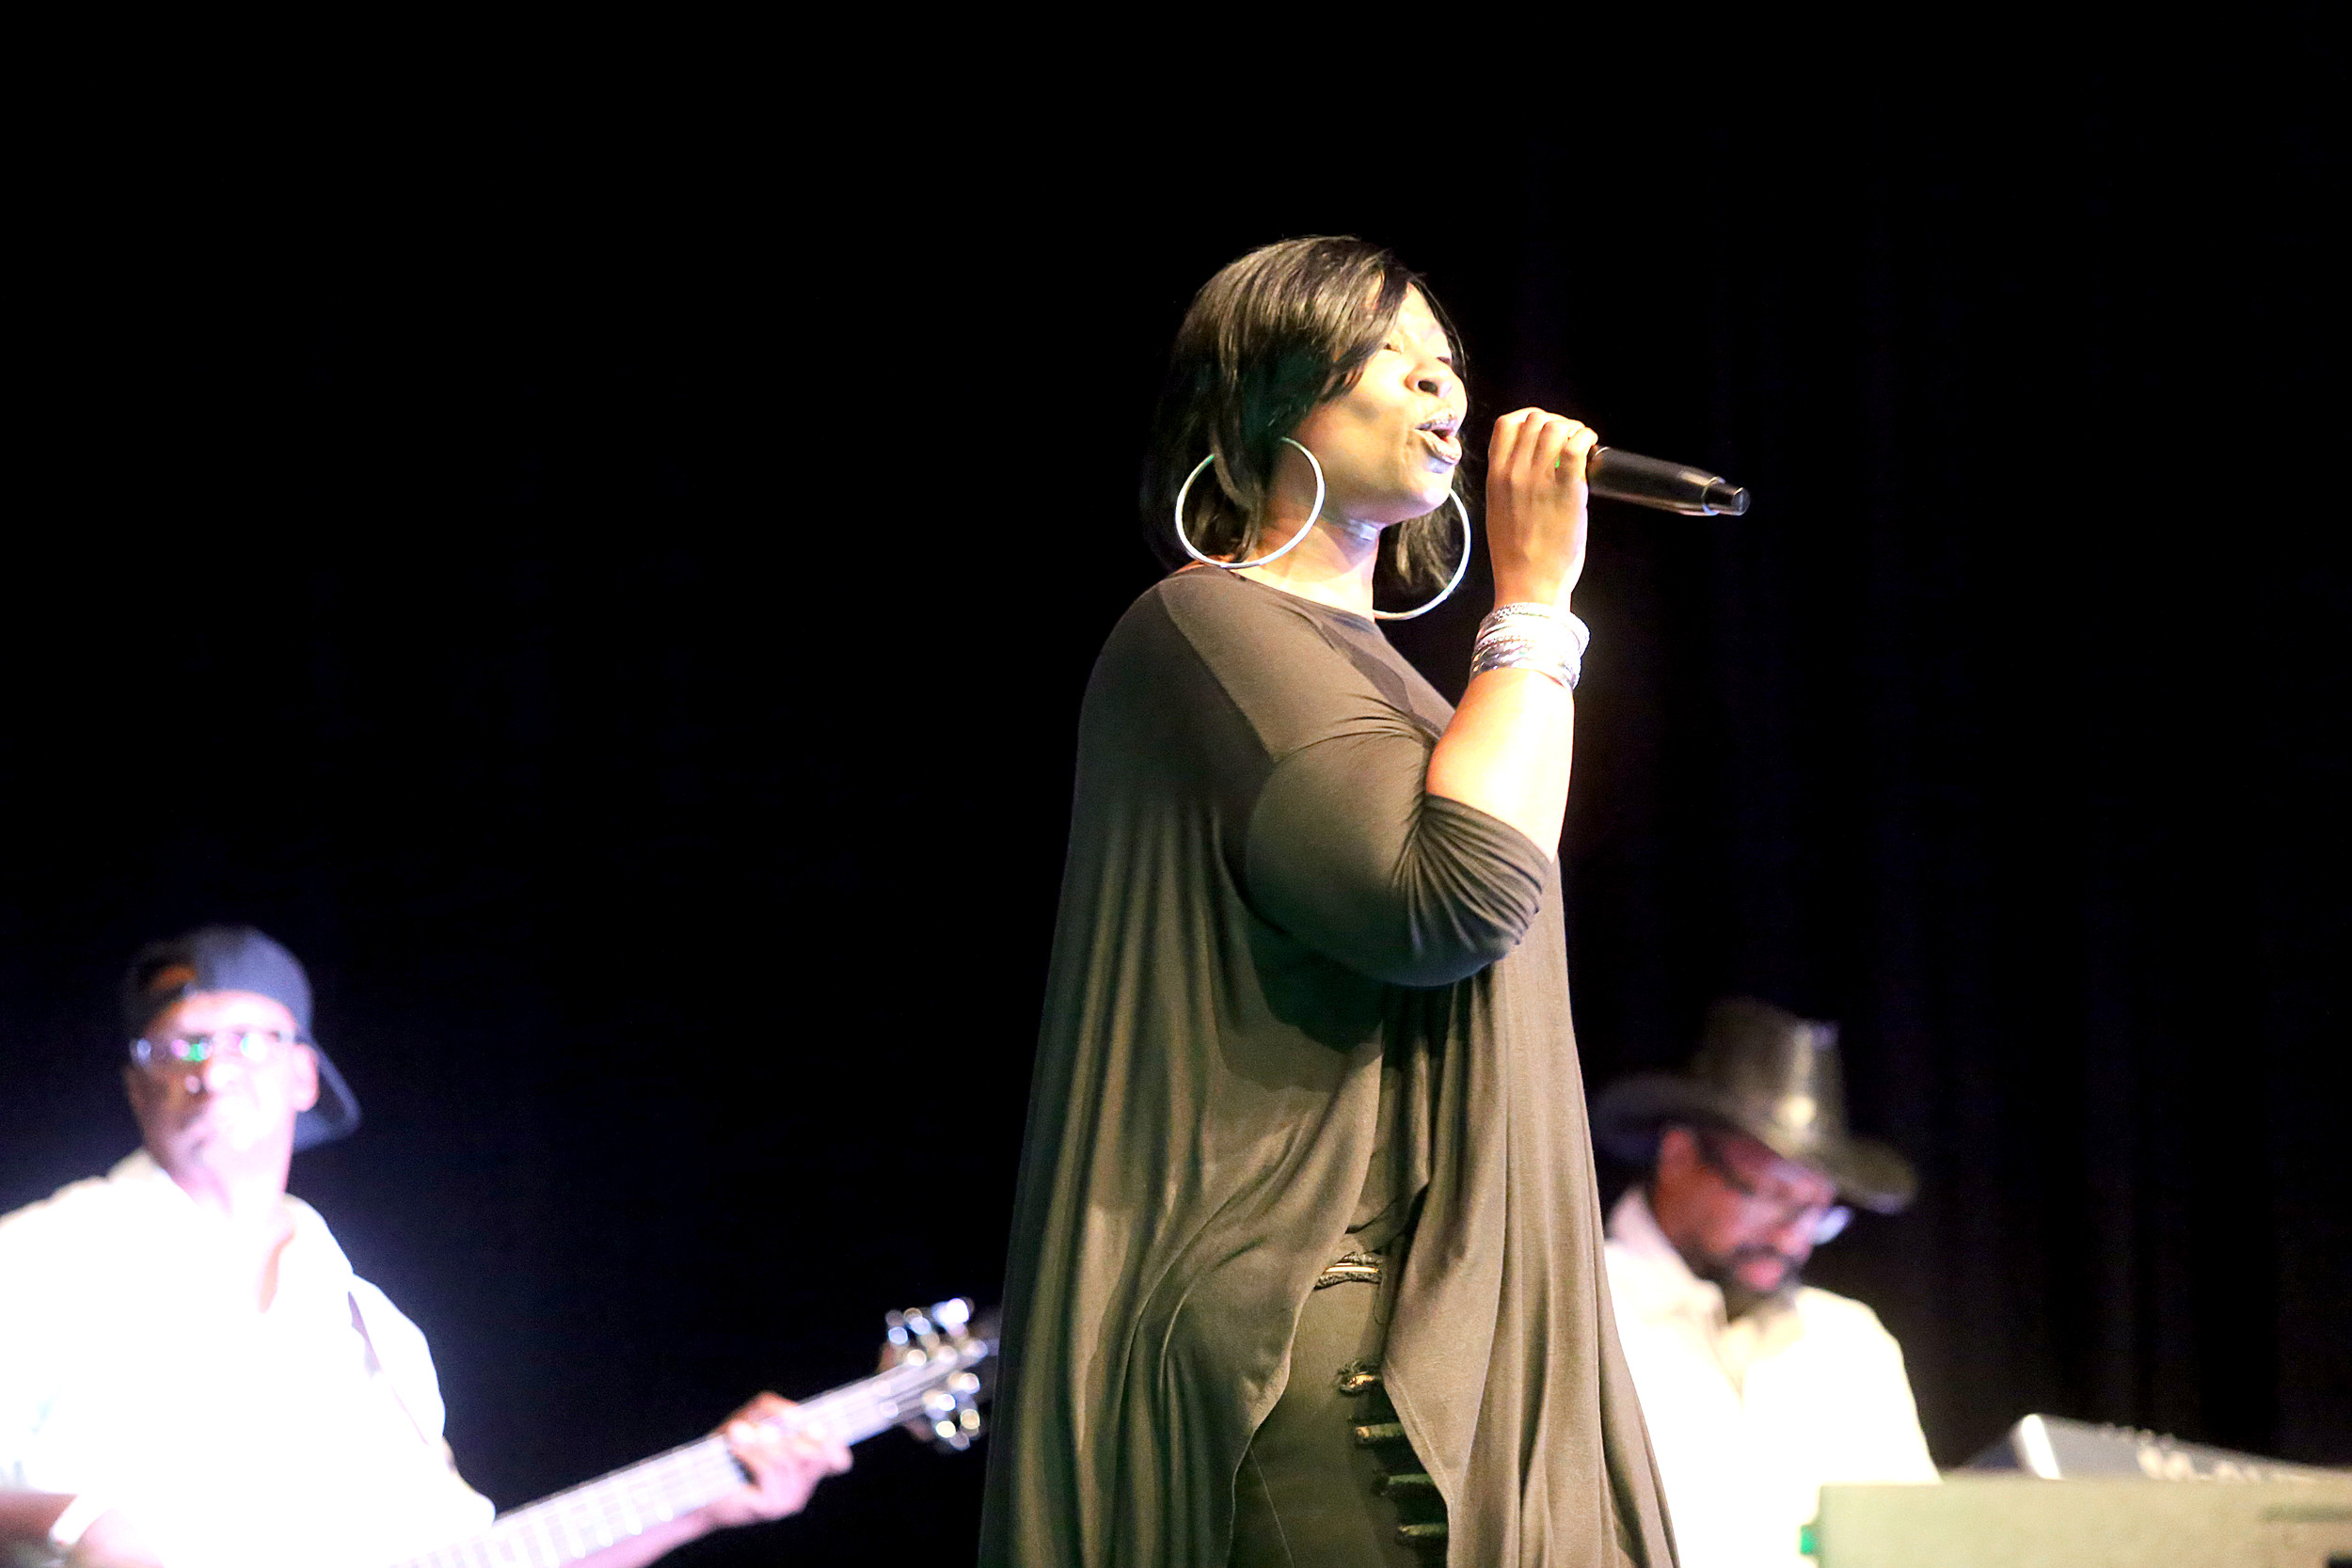 Artist Nacole opened the show for the first Sumter Soul Fest at the Sumter County Civic Center on Saturday night. Nacole was one of seven artists to take the stage. Organizers for the event were Jesse Redmond, Shavonka Redmond, Brandie Harrell and Stearles Moye II.